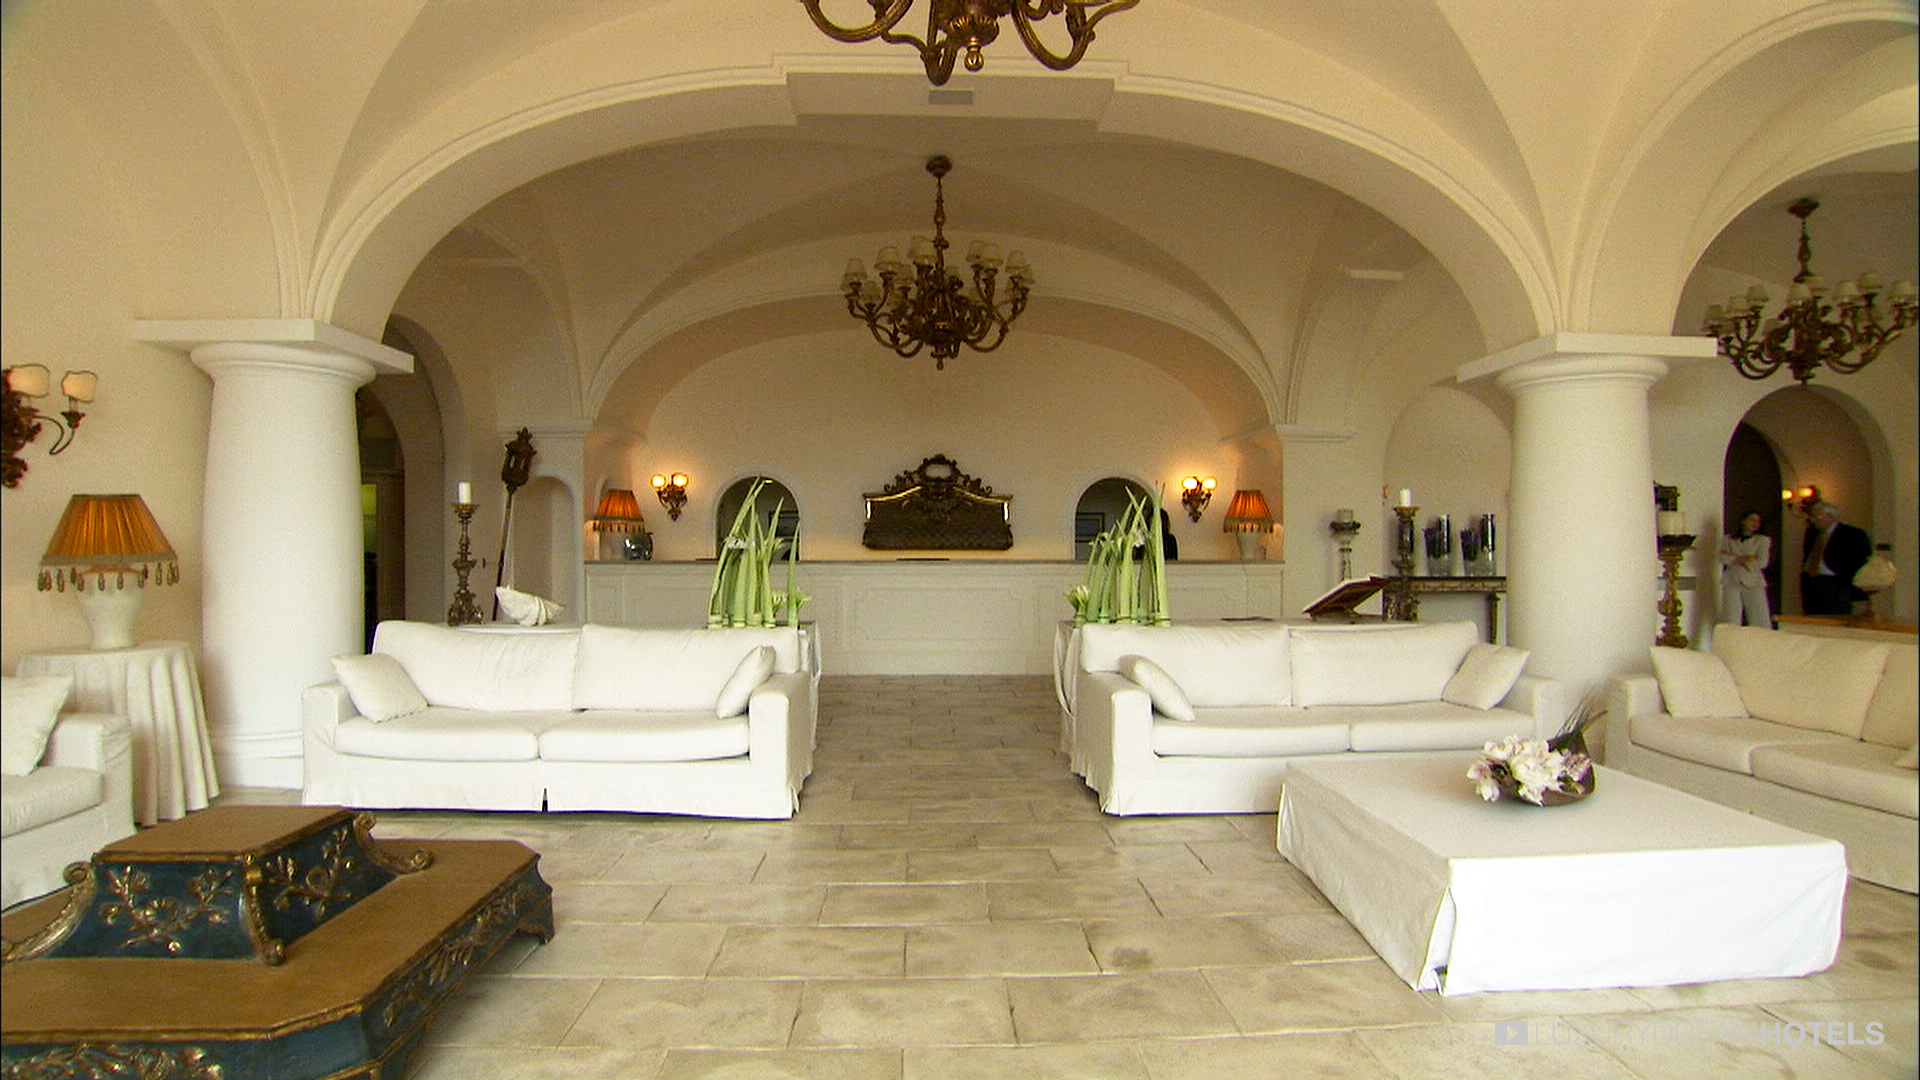 De Haute Qualite Luxury Hotel, Capri Palace Hotel U0026 Spa, Anacapri, Italy   Luxury Dream  Hotels